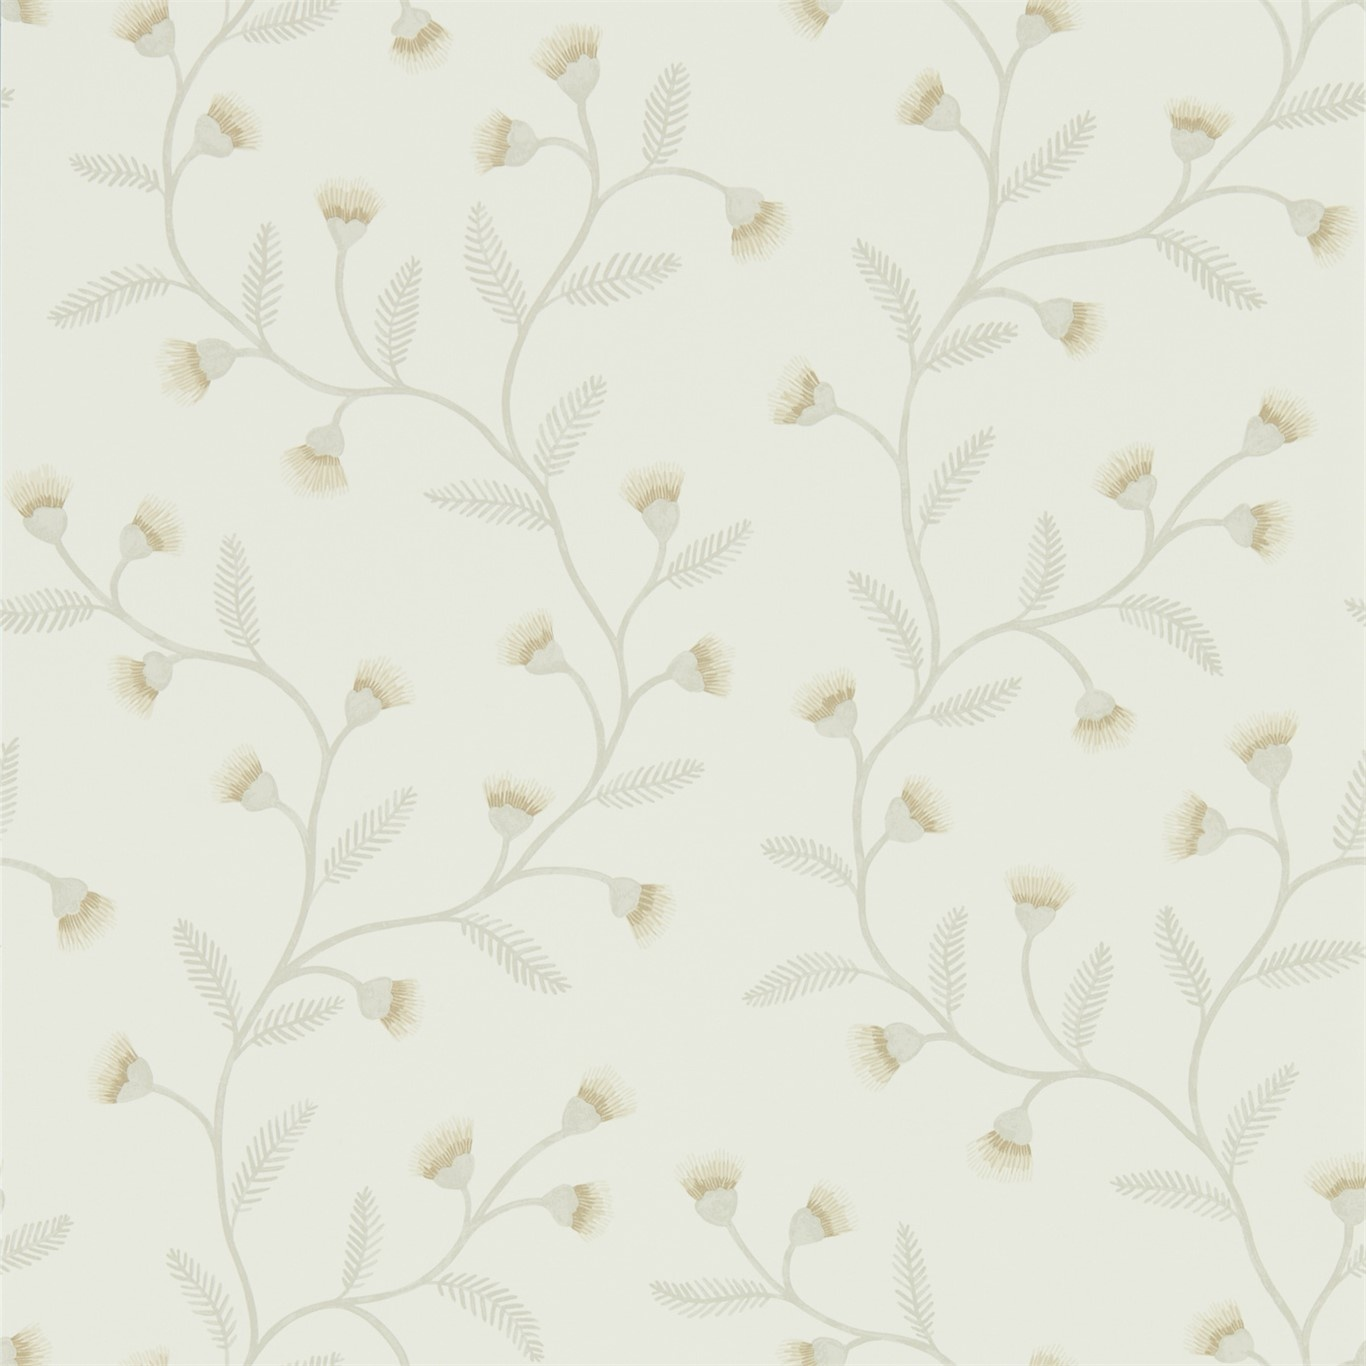 Image of Sanderson Home Everly Linen Wallpaper 216376